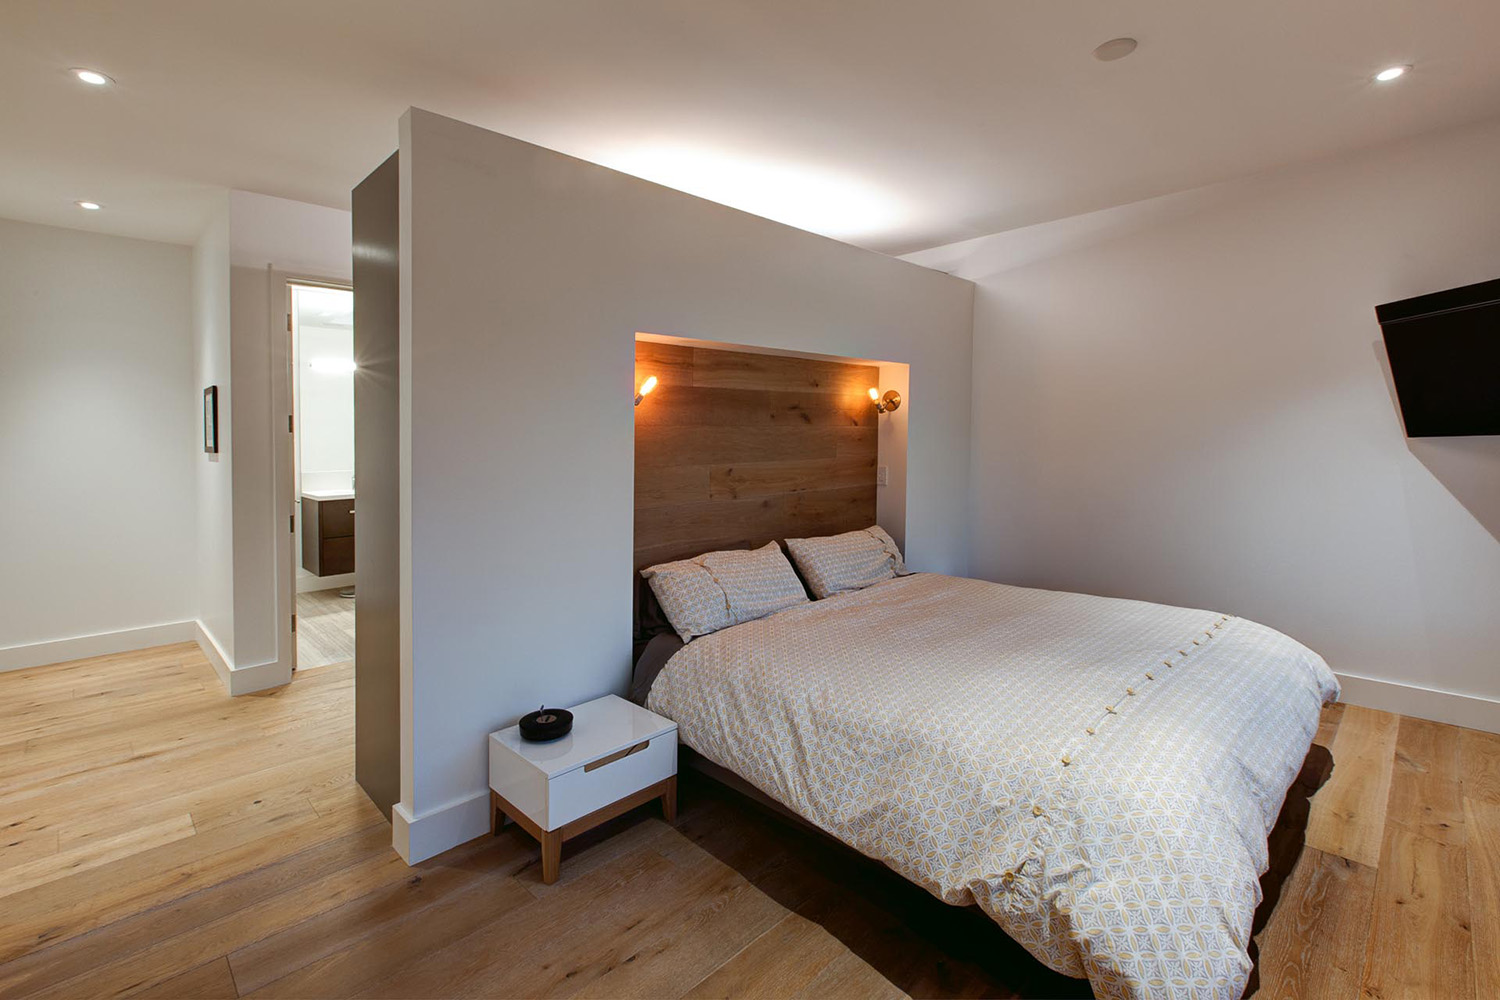 Bedroom with designed custom built headboard and lighting with ensuite washroom and wardrobe